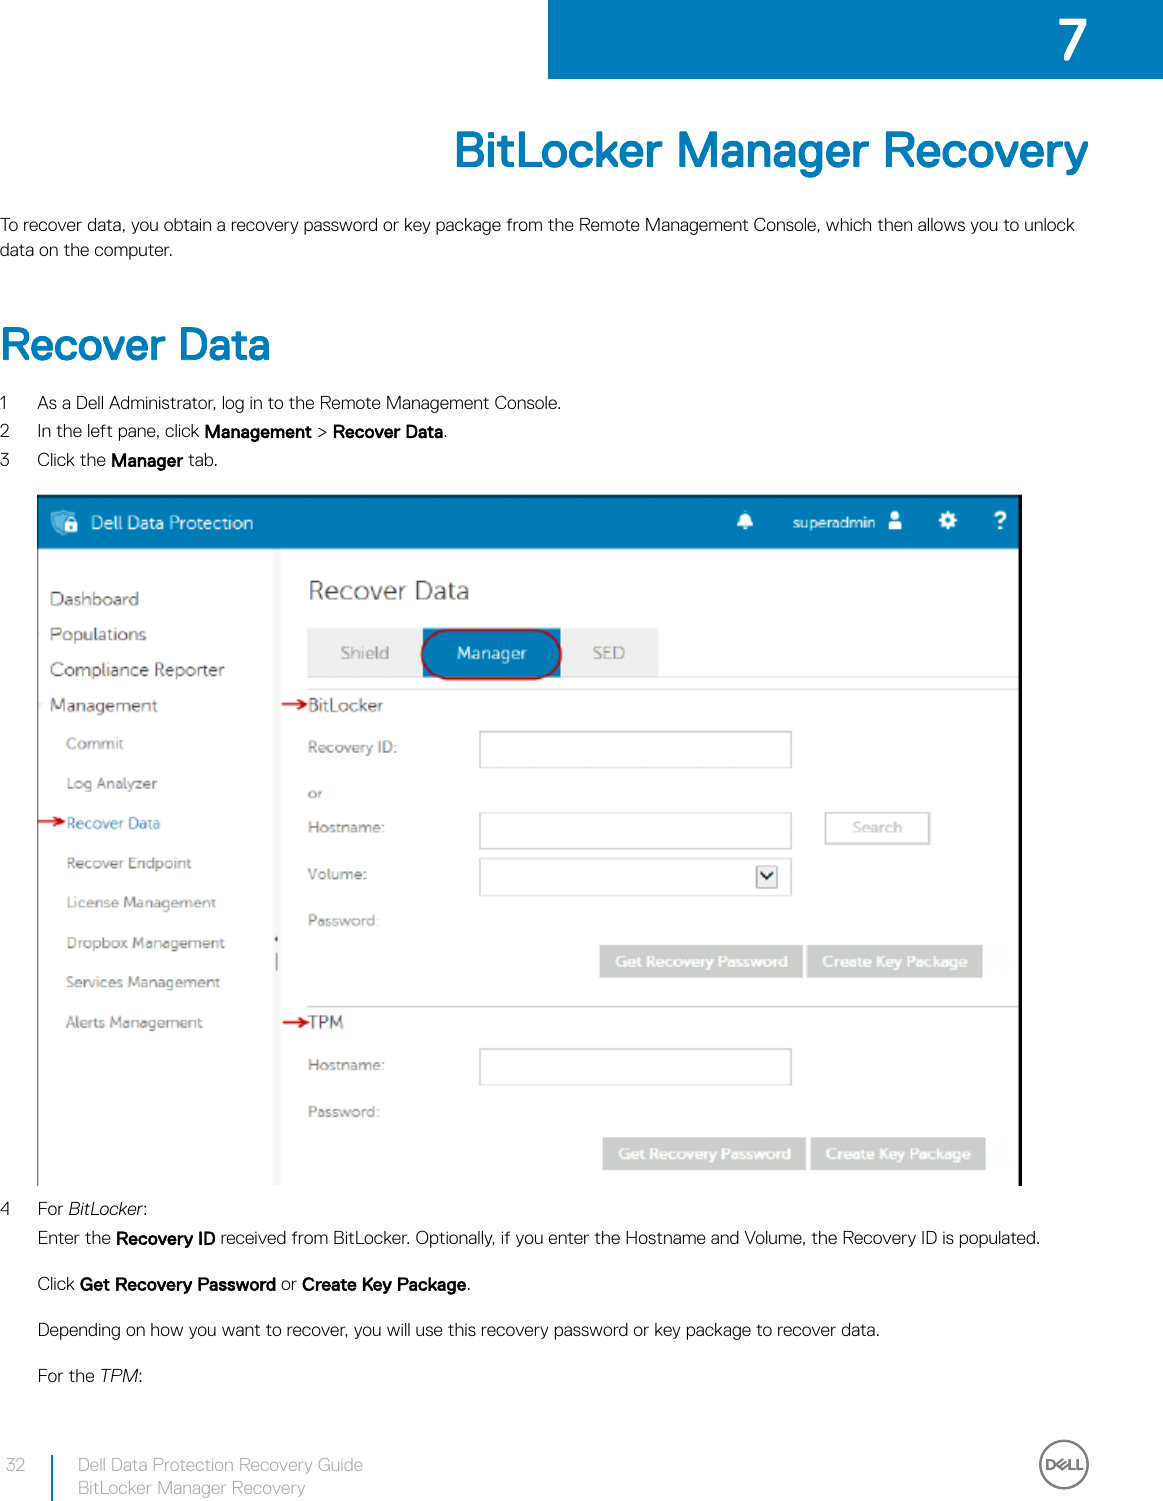 Dell data protection security tools Recovery Guide User